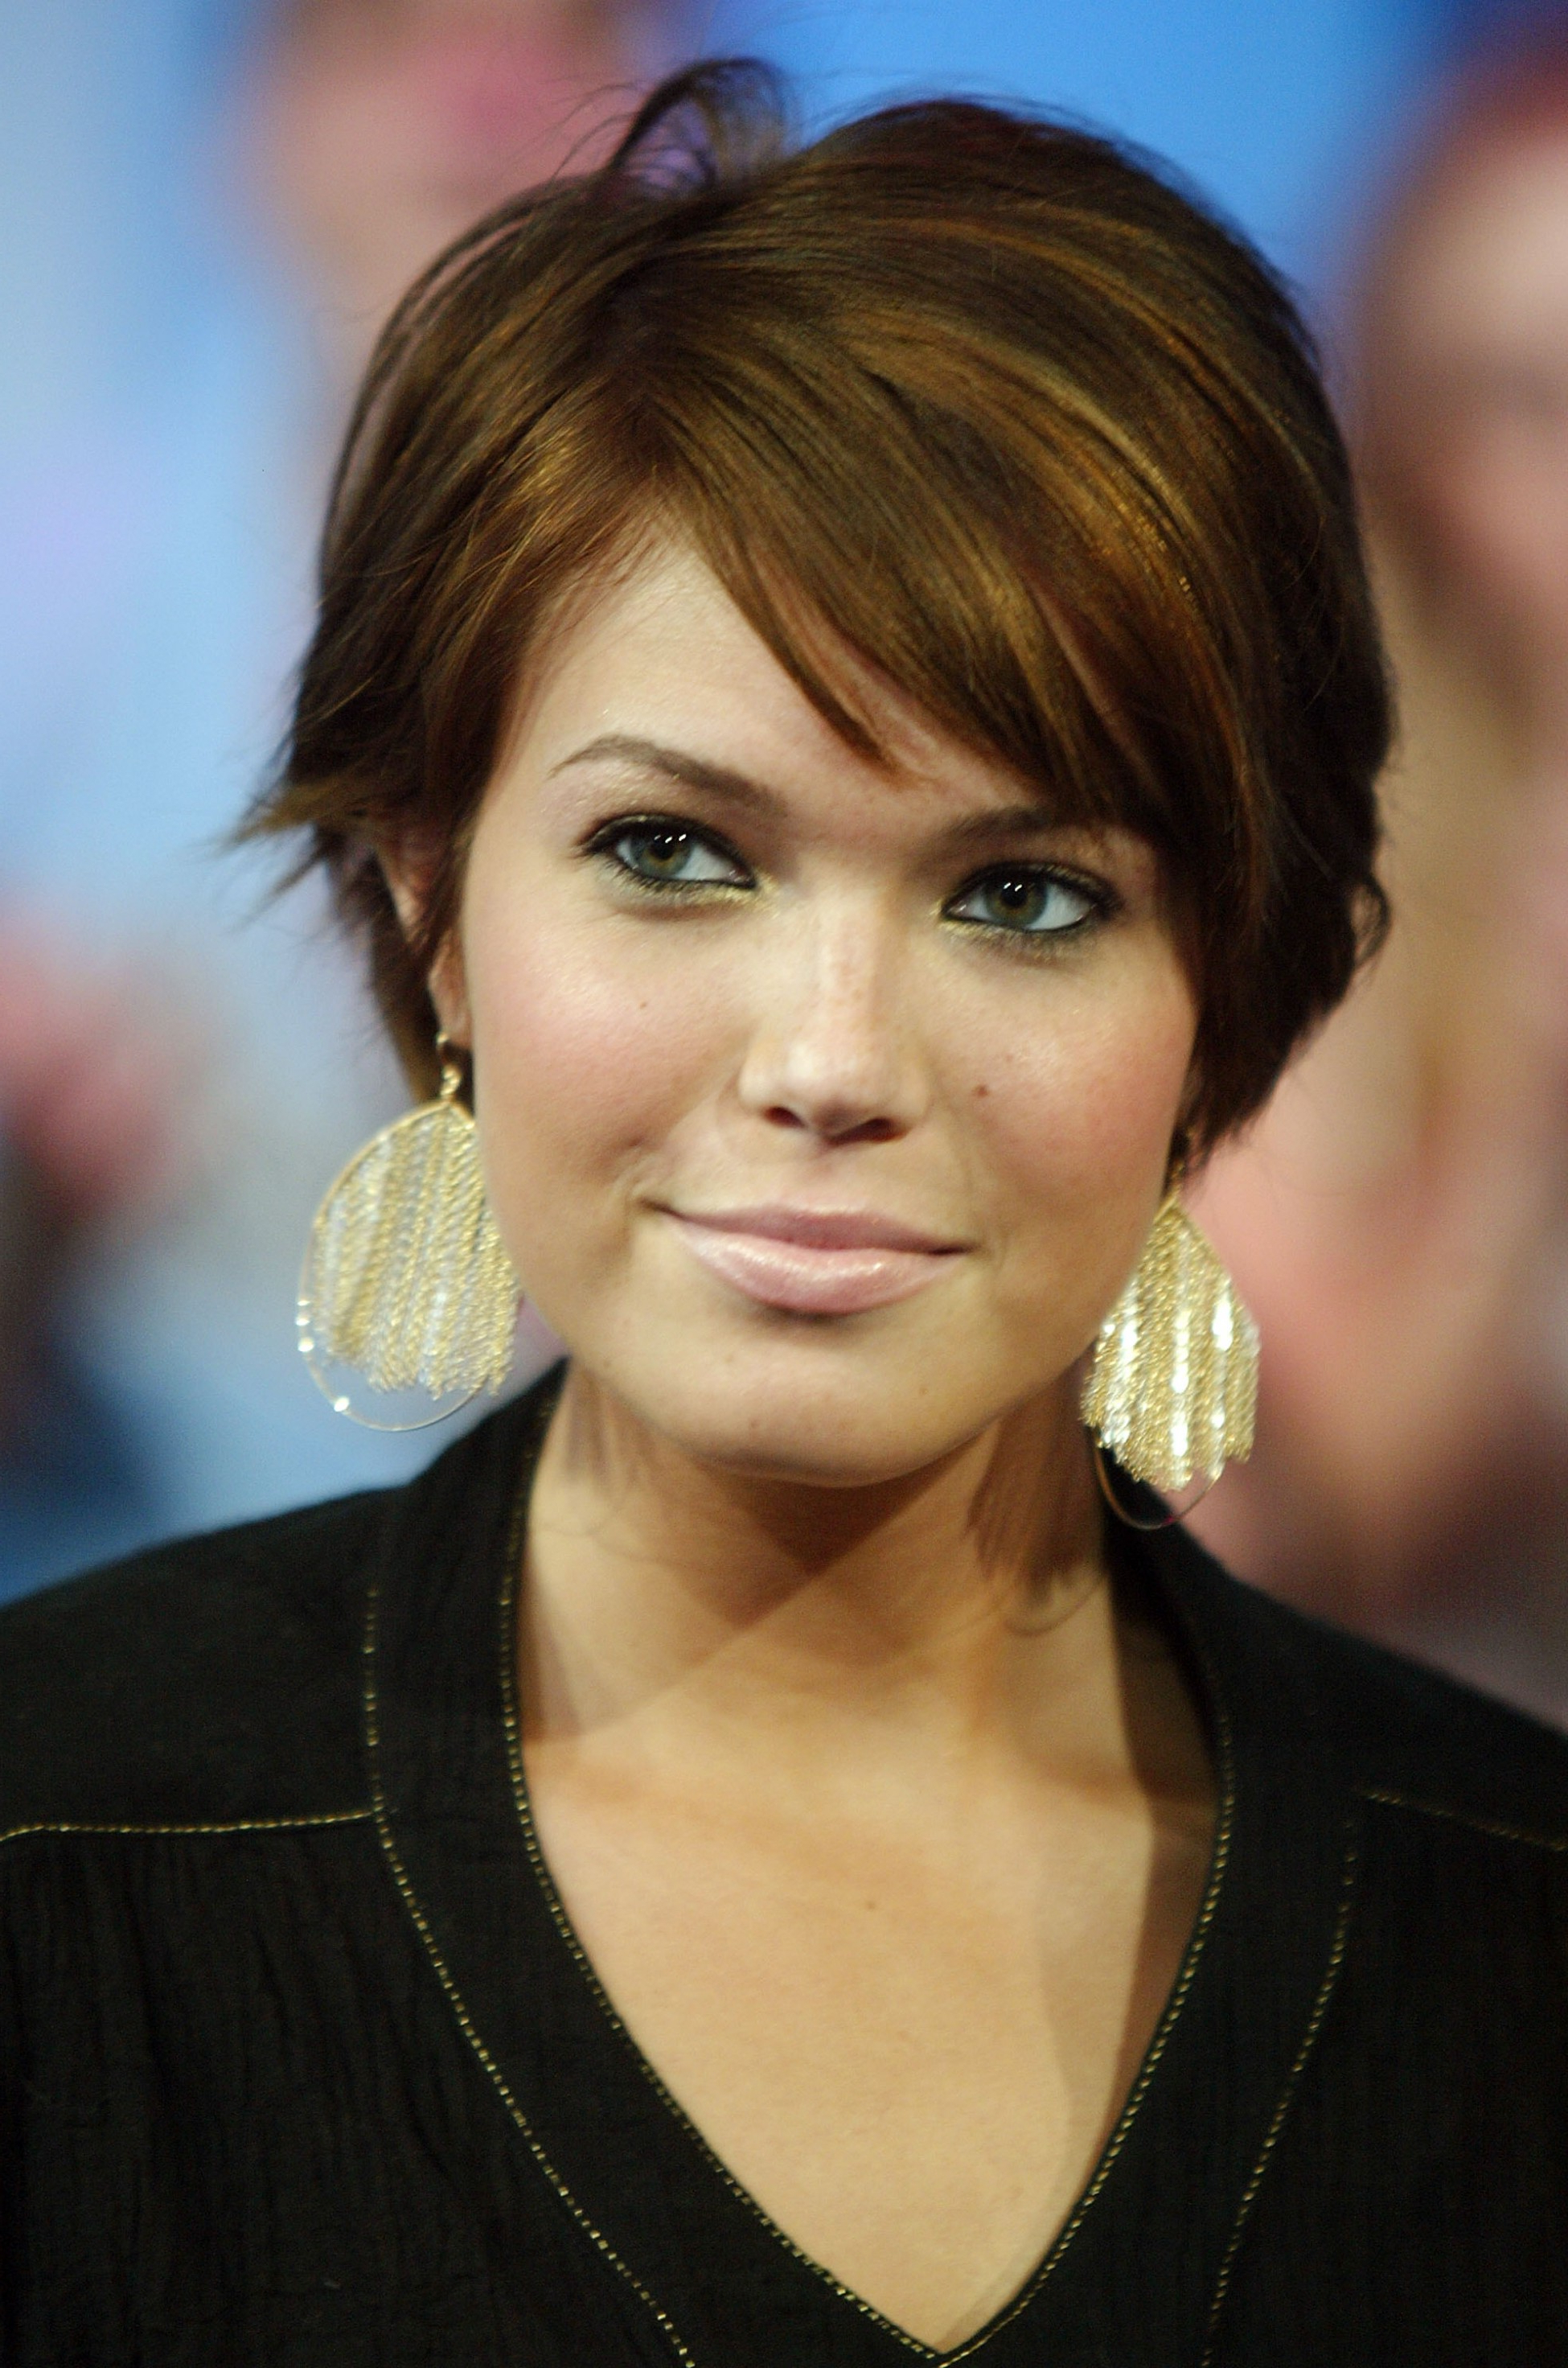 Short Haircuts For Thick Hair And Round Faces – Hairstyle For Women Pertaining To Short Hairstyles For Thick Hair (View 18 of 25)